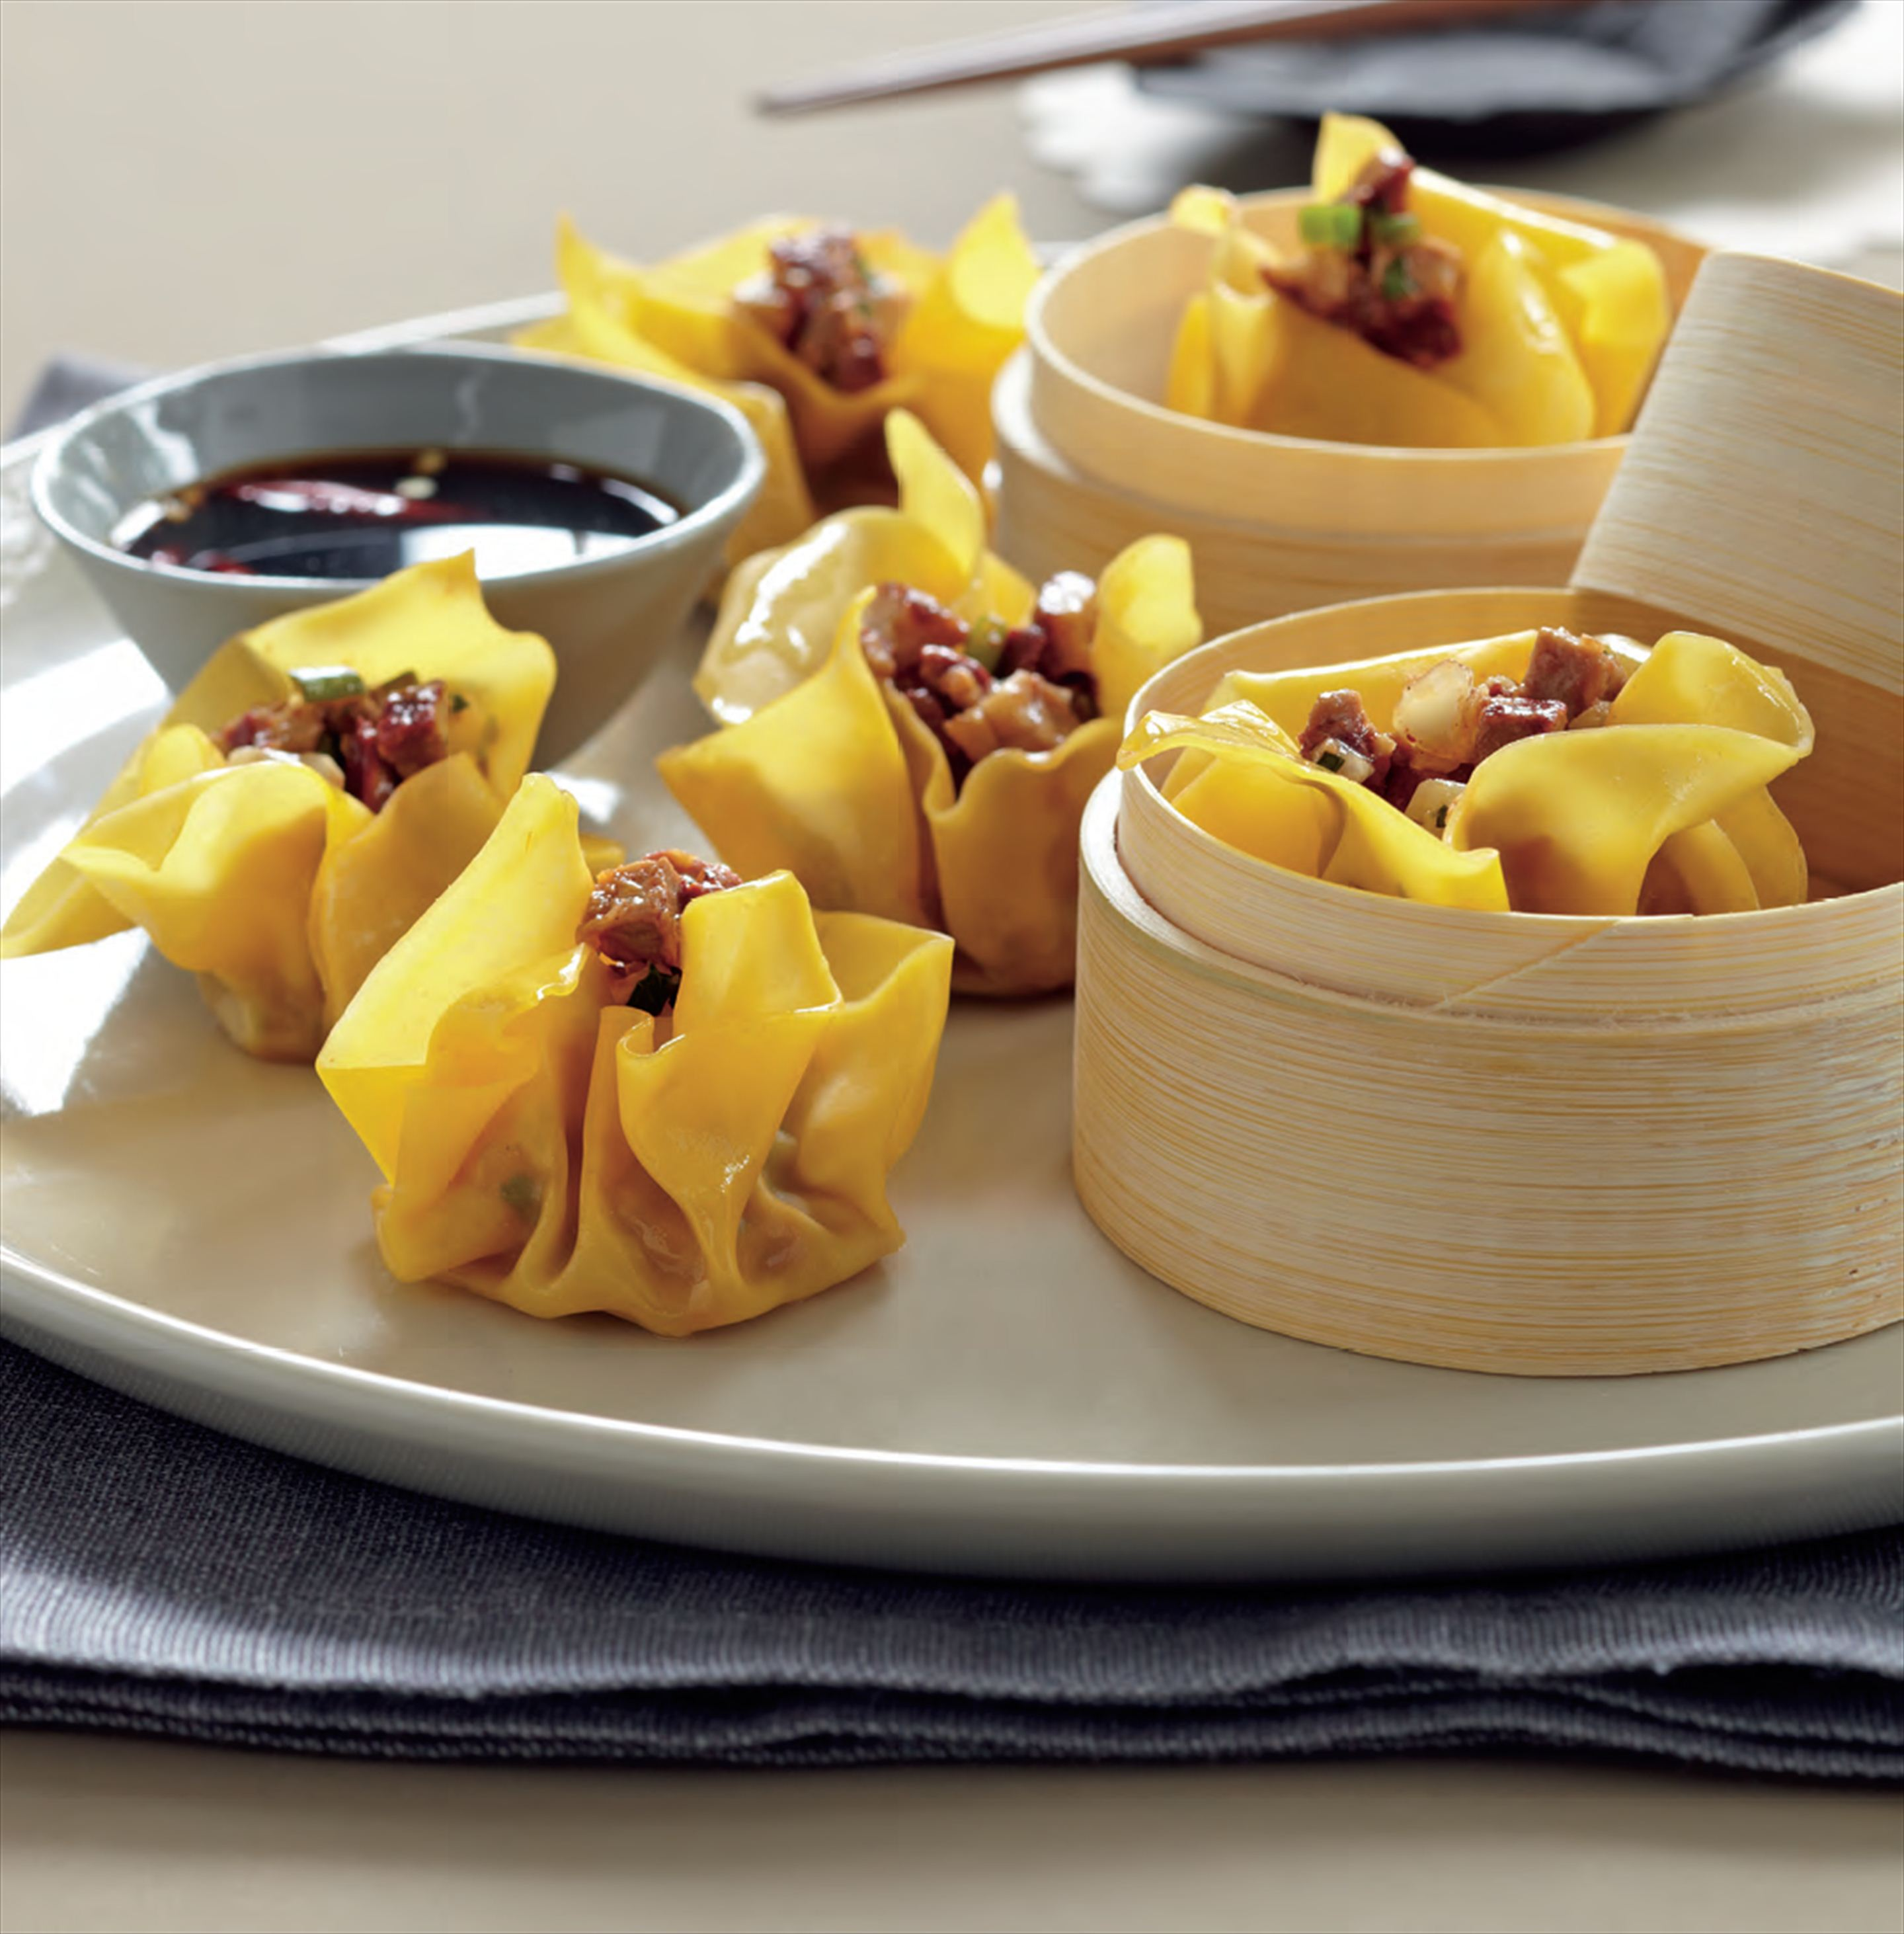 Peking duck and macadamia wontons